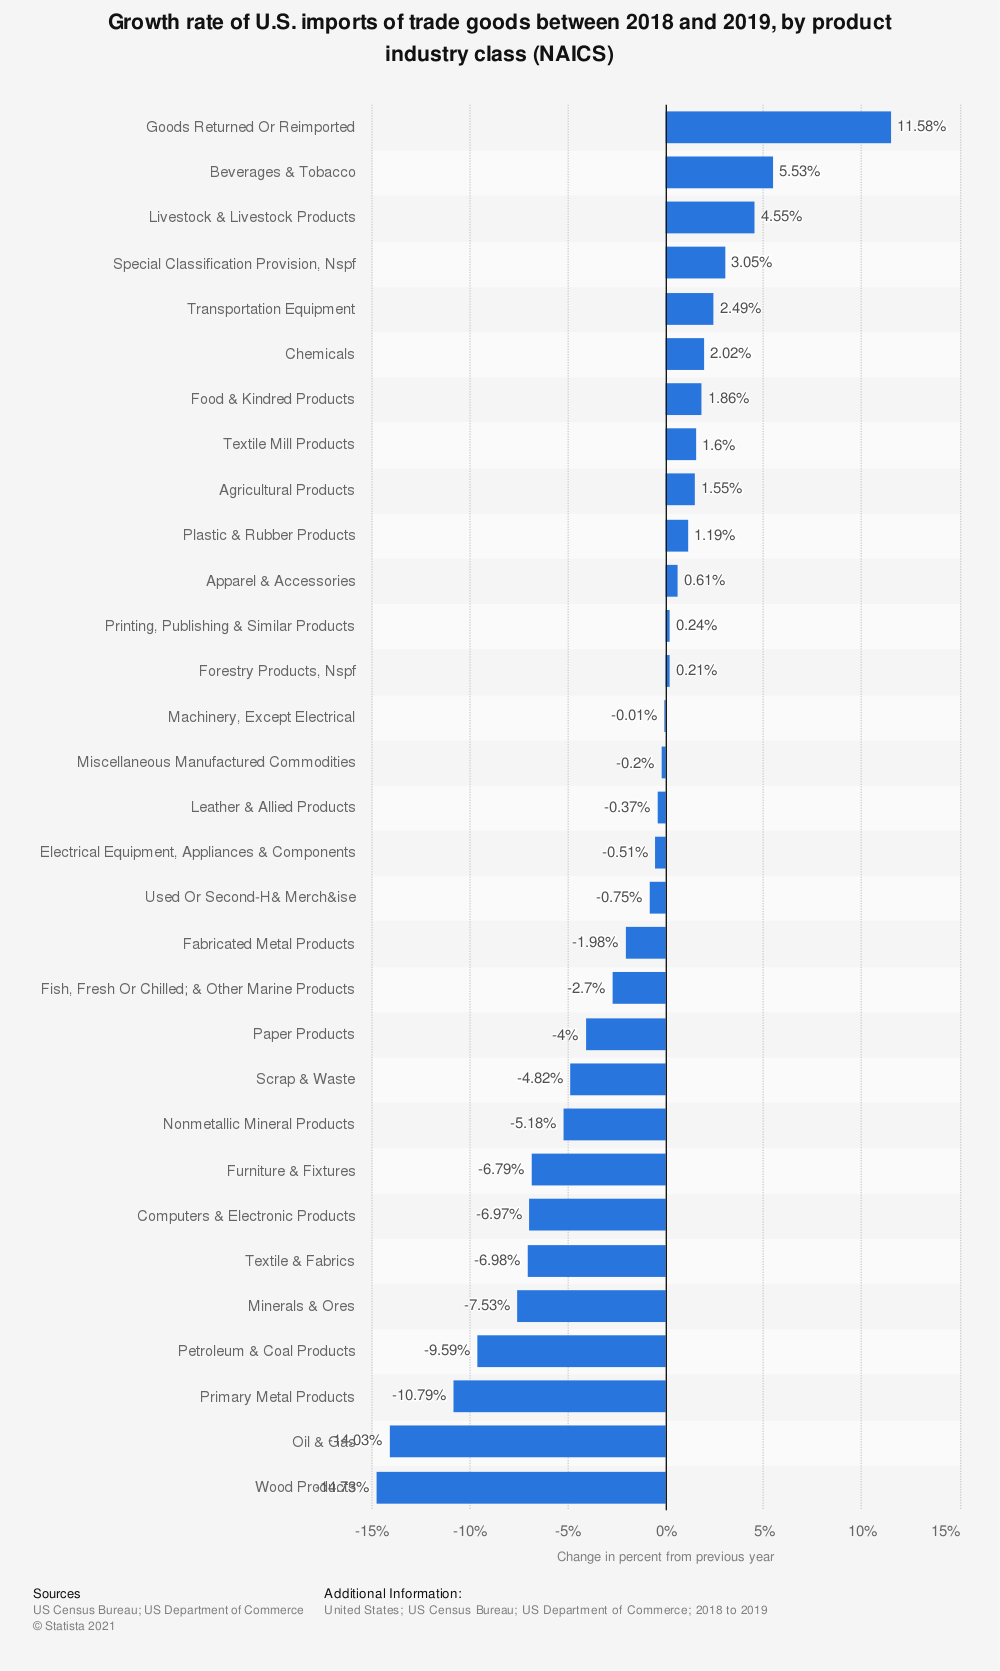 Statistic: Growth rate of U.S. imports of trade goods between 2016 and 2017, by product industry class (NAICS) | Statista